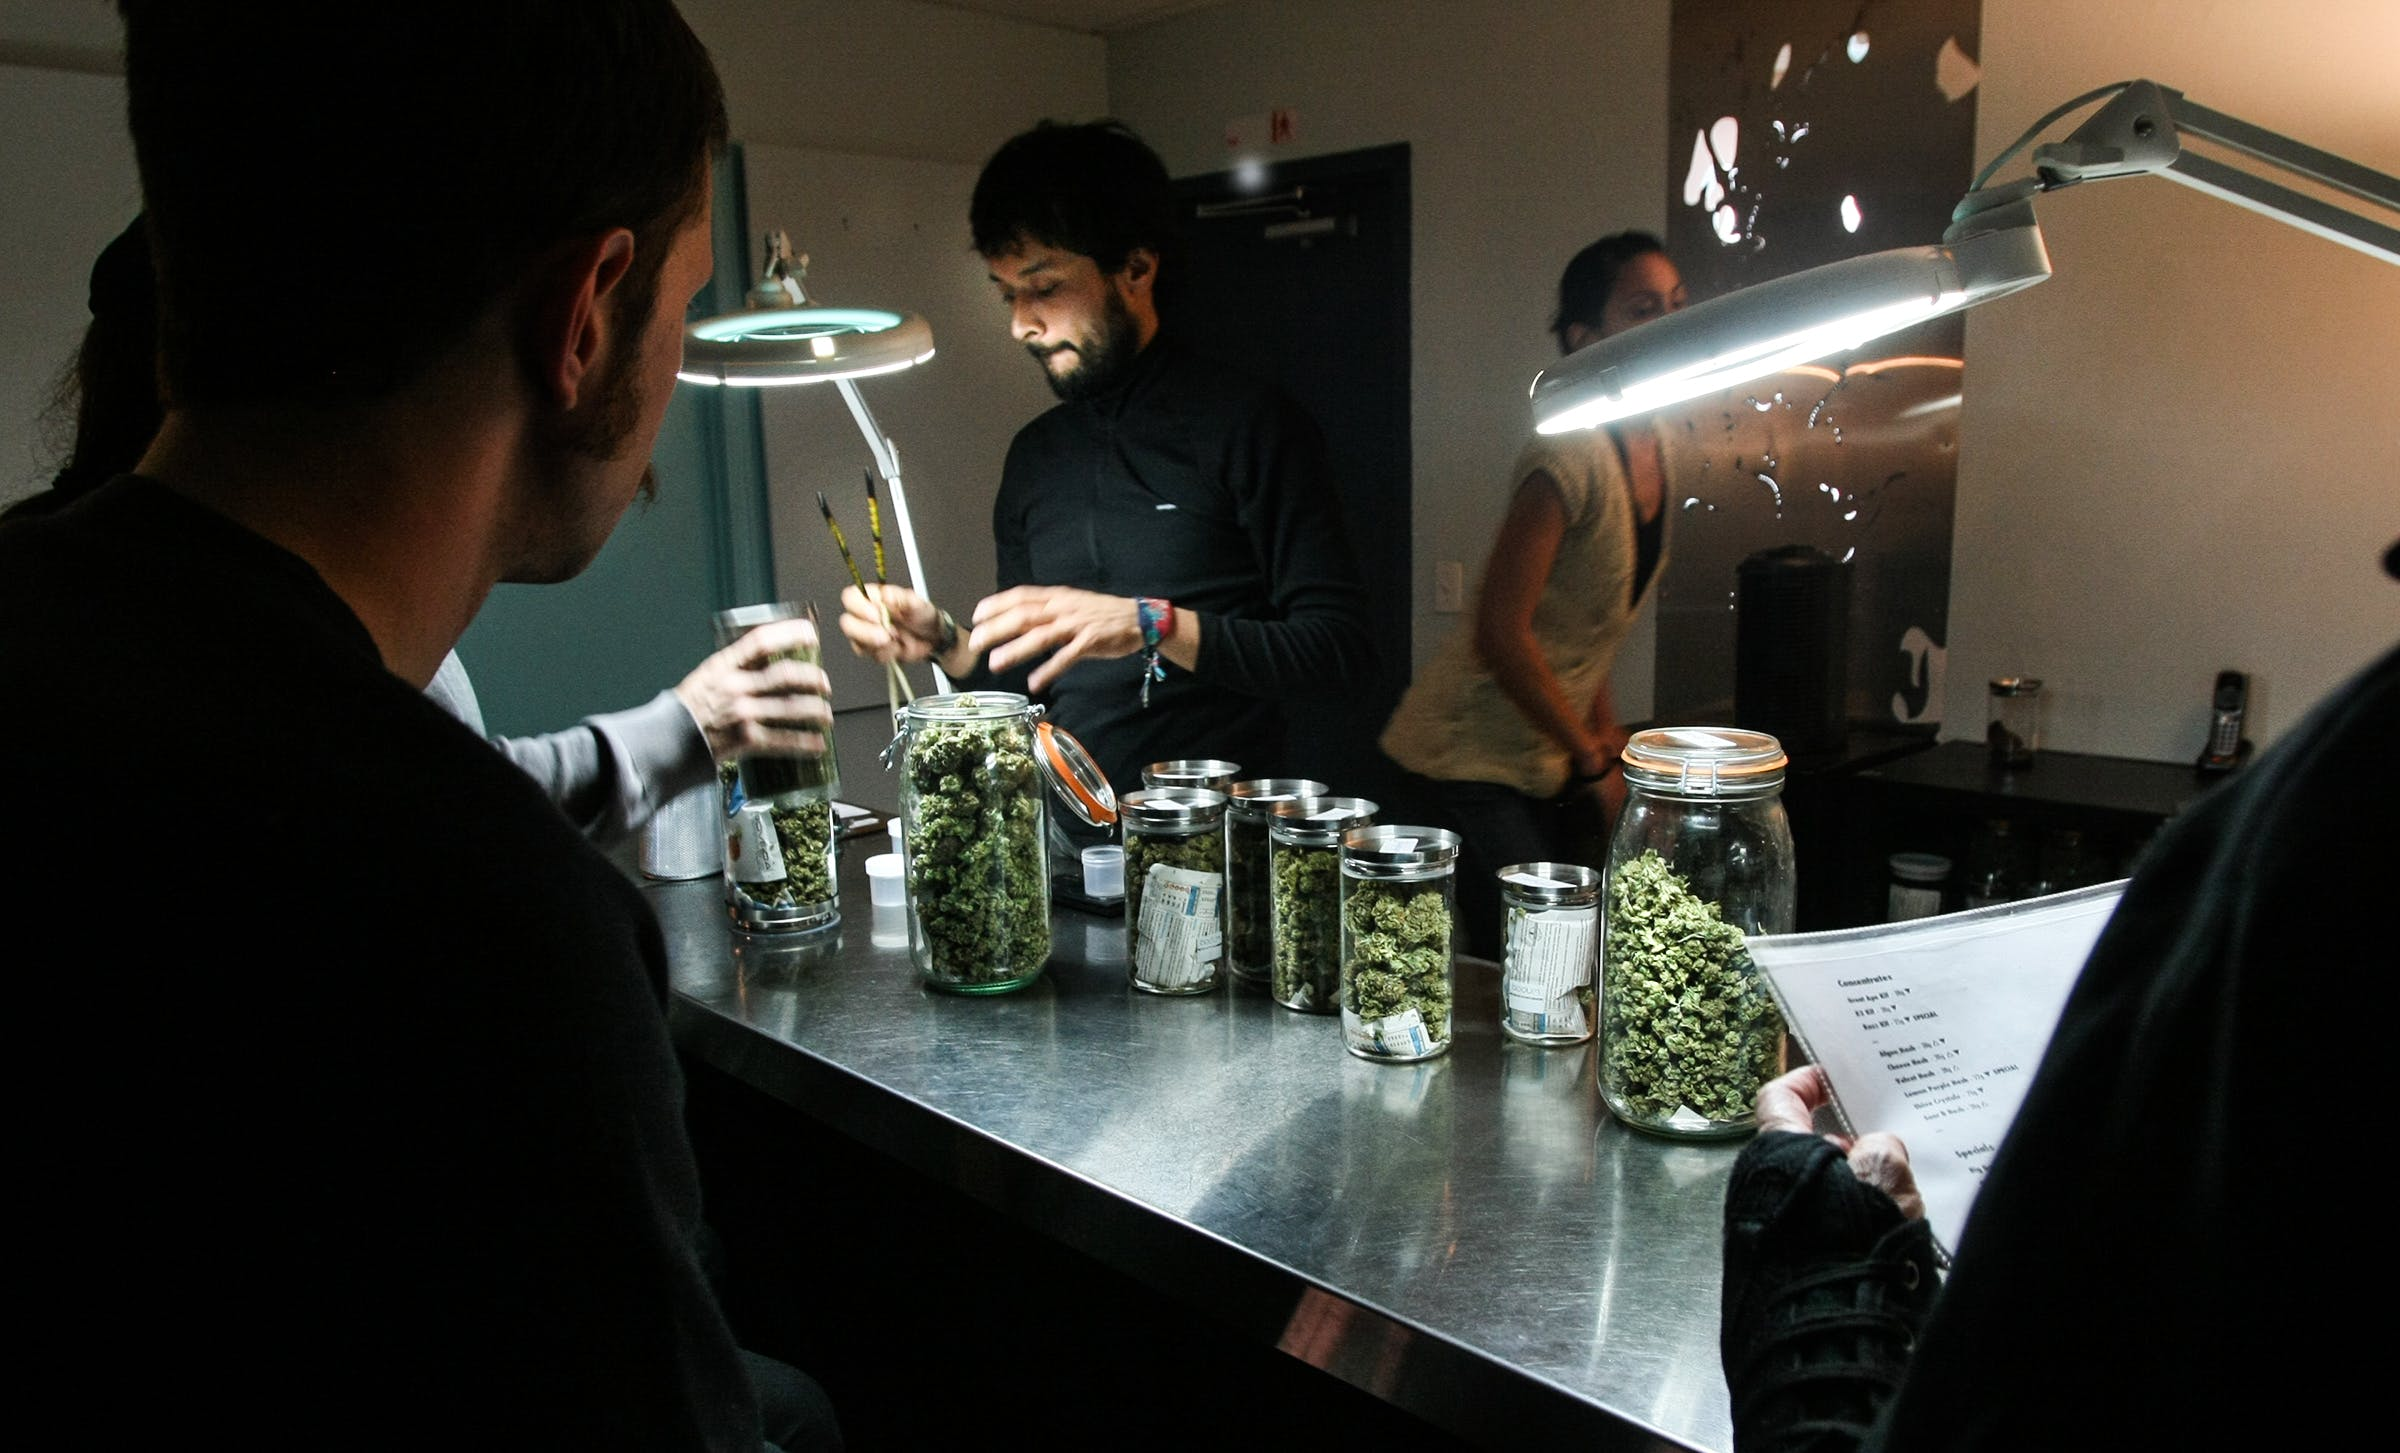 GettyImages 566069465 The United Nations just warned member states to keep recreational cannabis illegal